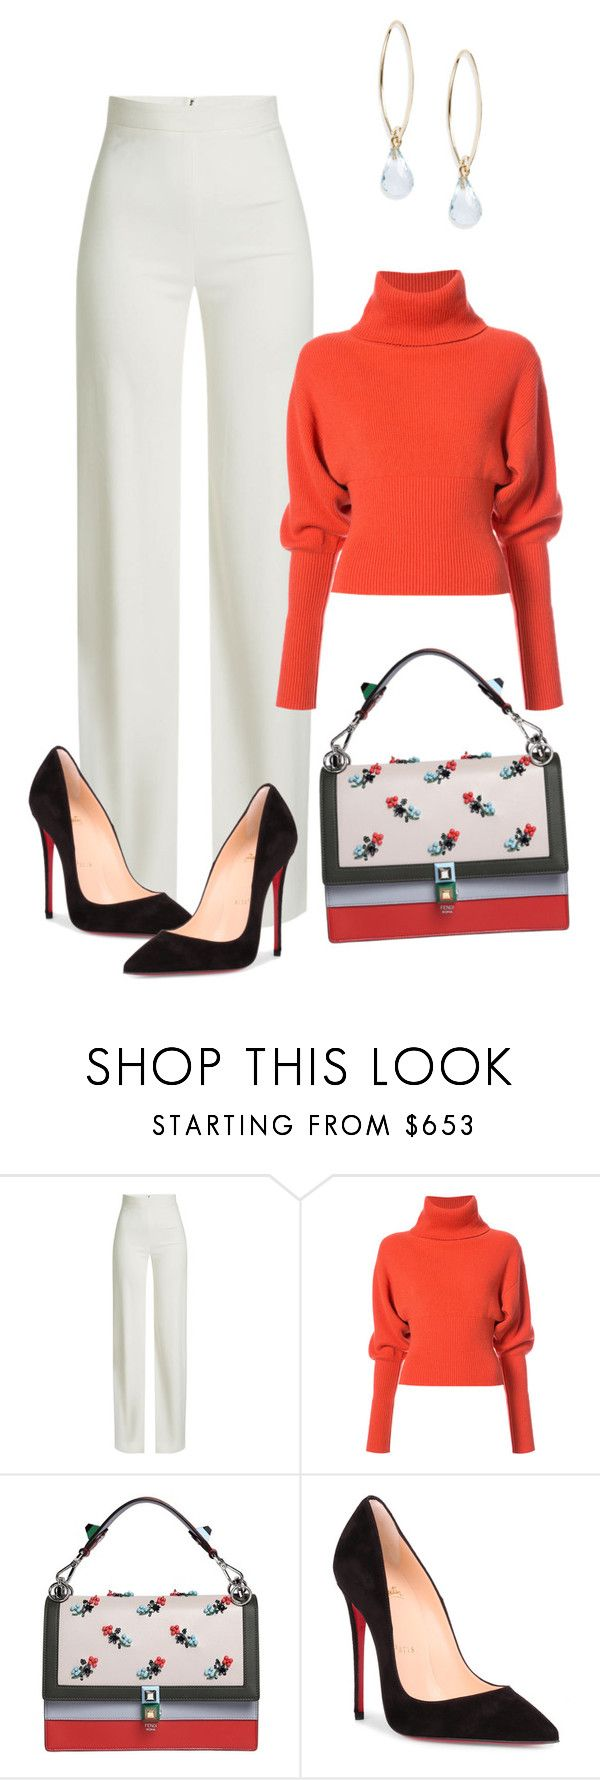 Untitled #815 by greenviolet ❤ liked on Polyvore featuring Brandon Maxwell, Creatures of the Wind, Fendi, Christian Louboutin and Saks Fifth Avenue